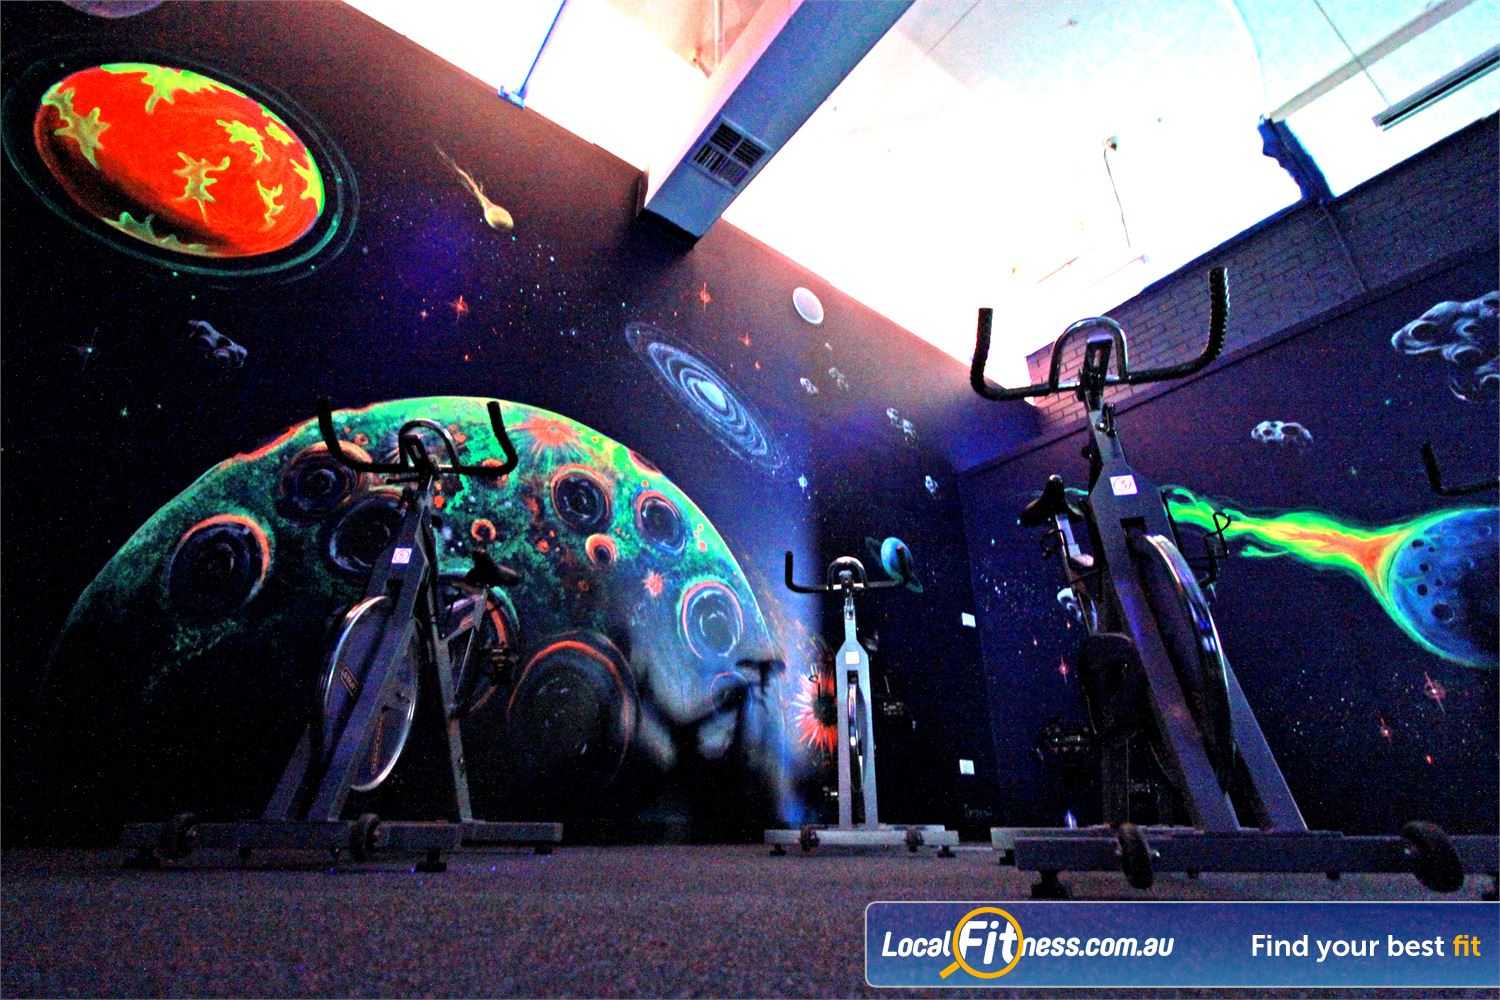 Fernwood Fitness Near Warwick Farm Enjoy the dynamic twilight environment with Liverpool spin cycle classes.